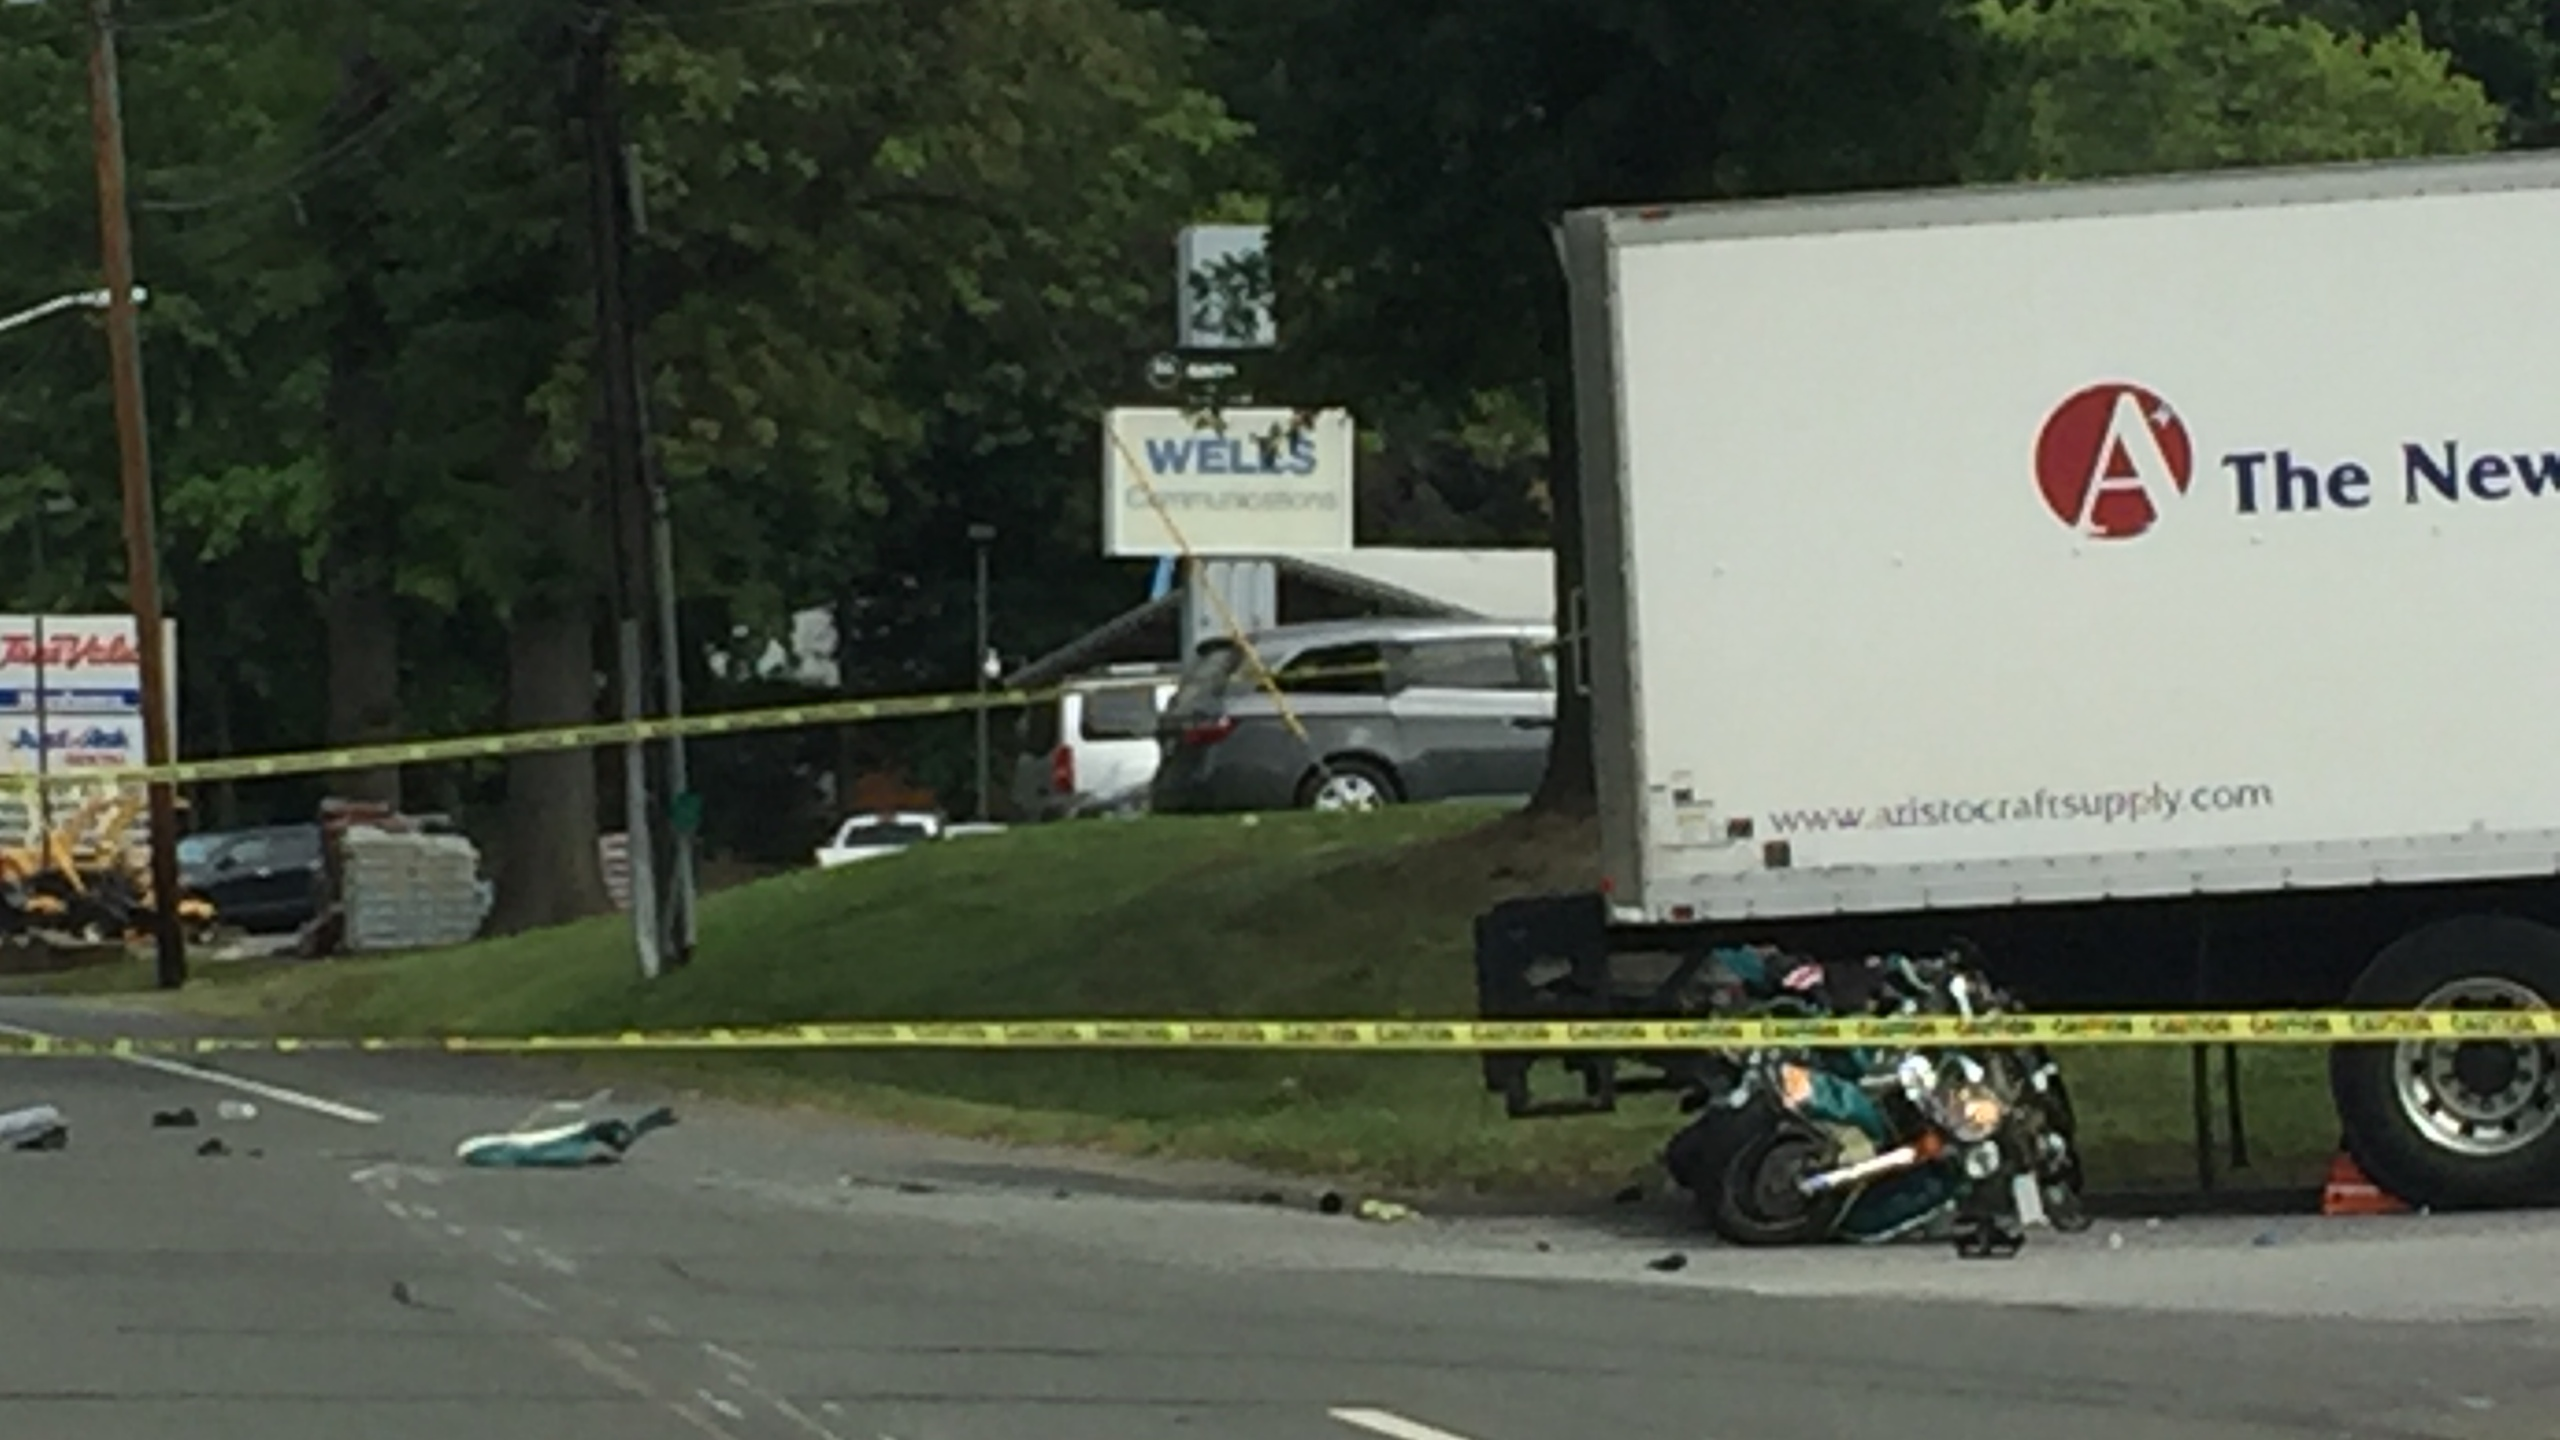 A Motorcycle Accident Has Shut Down Part Of Route 4 Headed